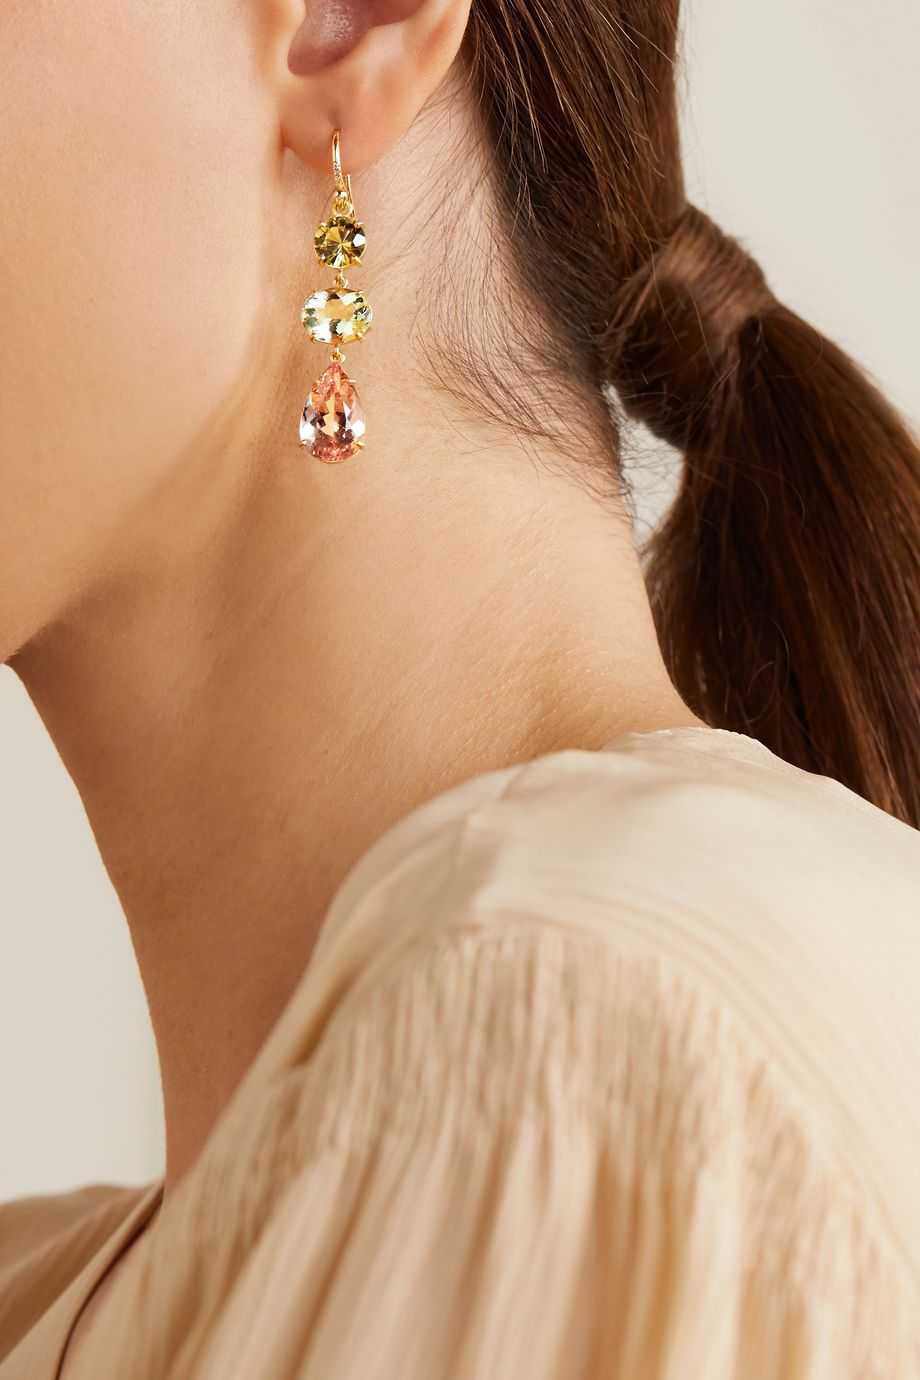 Irene Neuwirth Gemmy Gem 18-karat gold multi-stone earrings